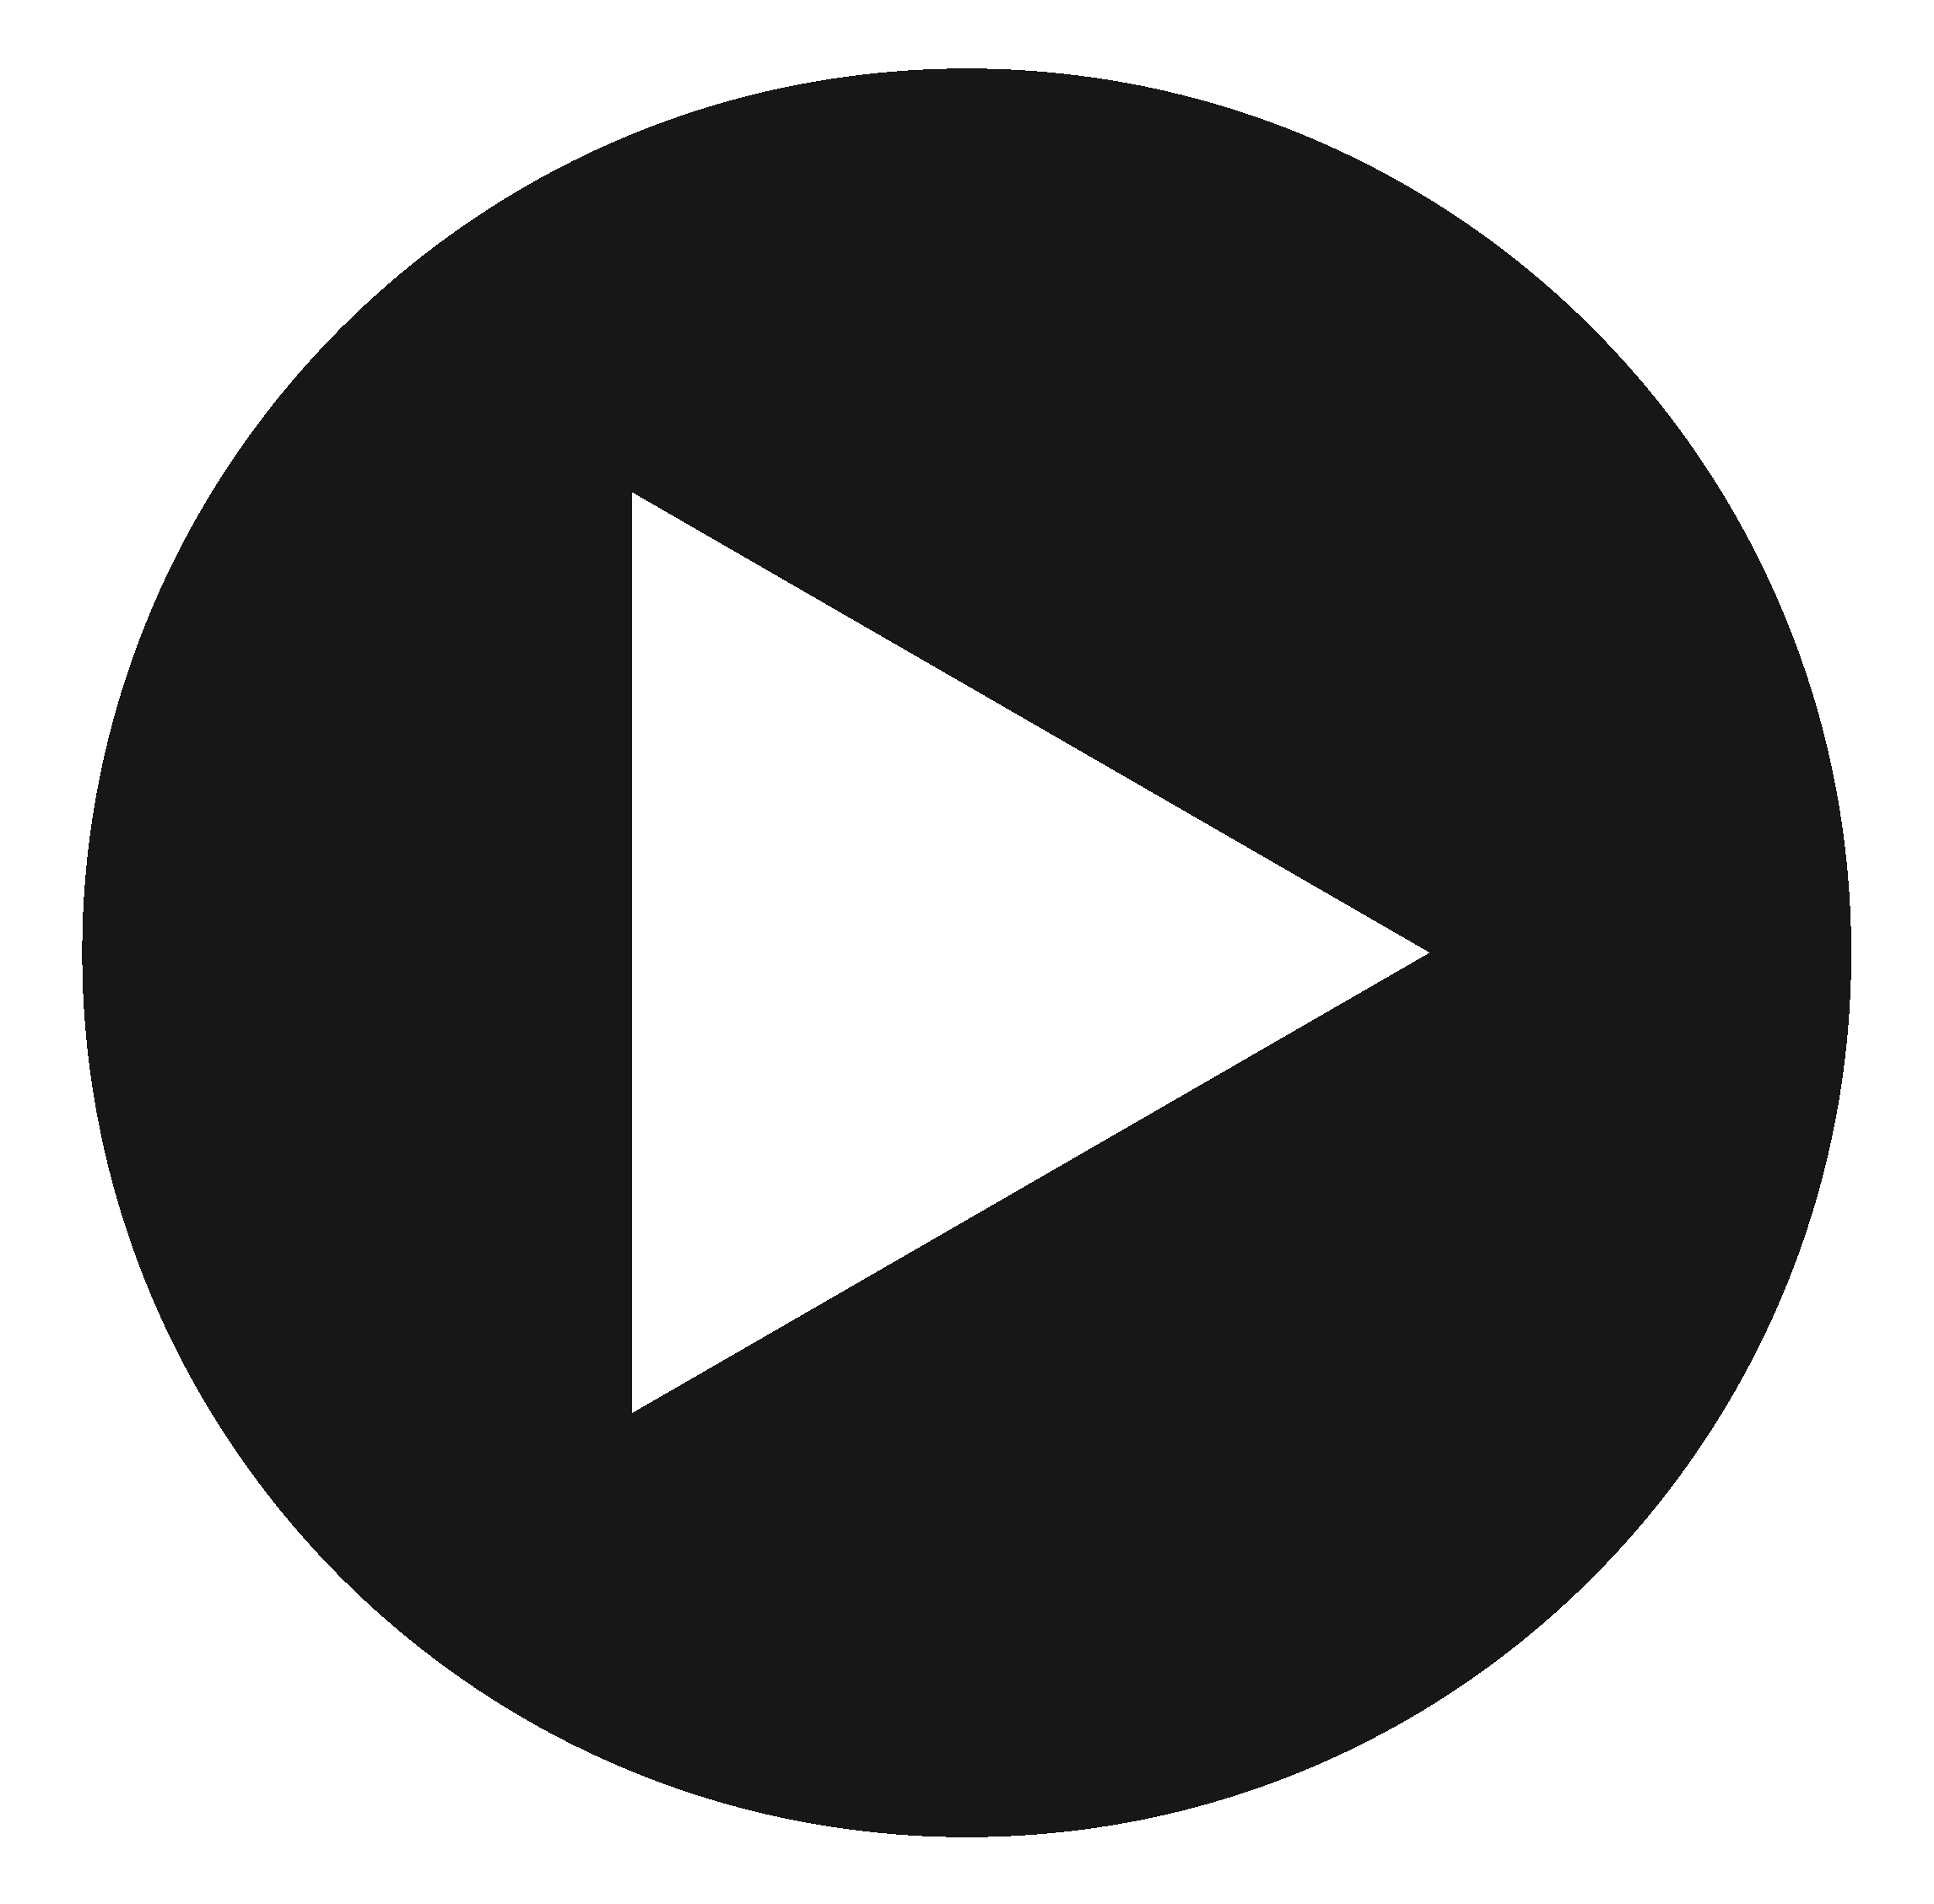 Free Play Button Png, Download Free Clip Art, Free Clip Art.